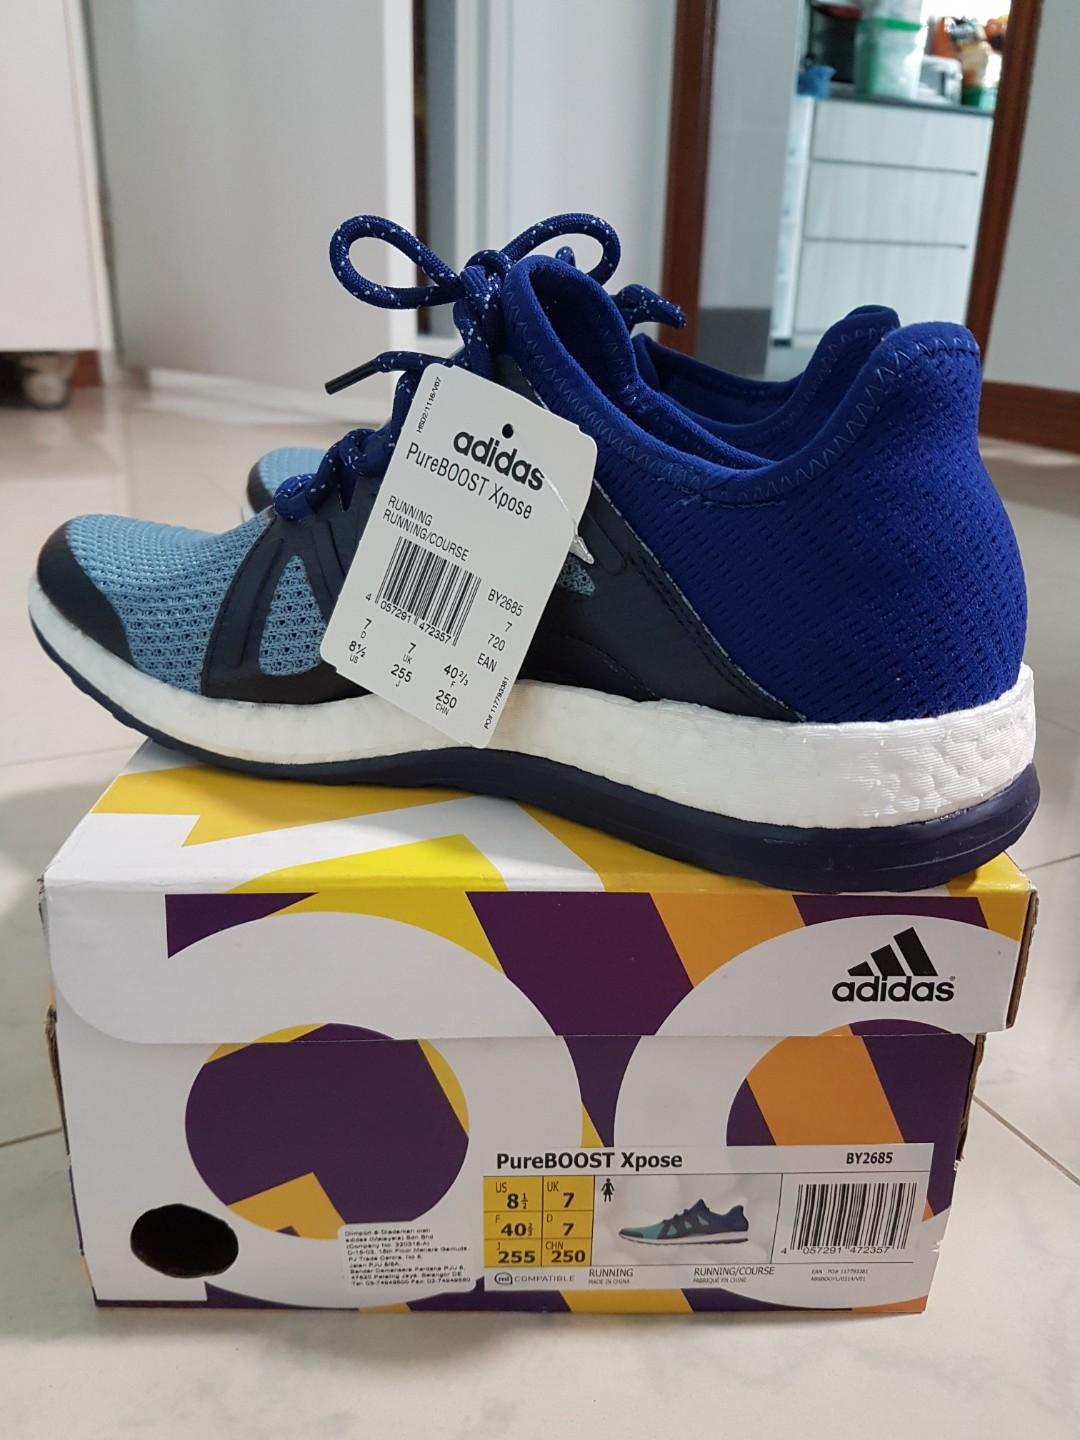 Adidas PureBOOST Xpose Women running shoes, Sports, Sports